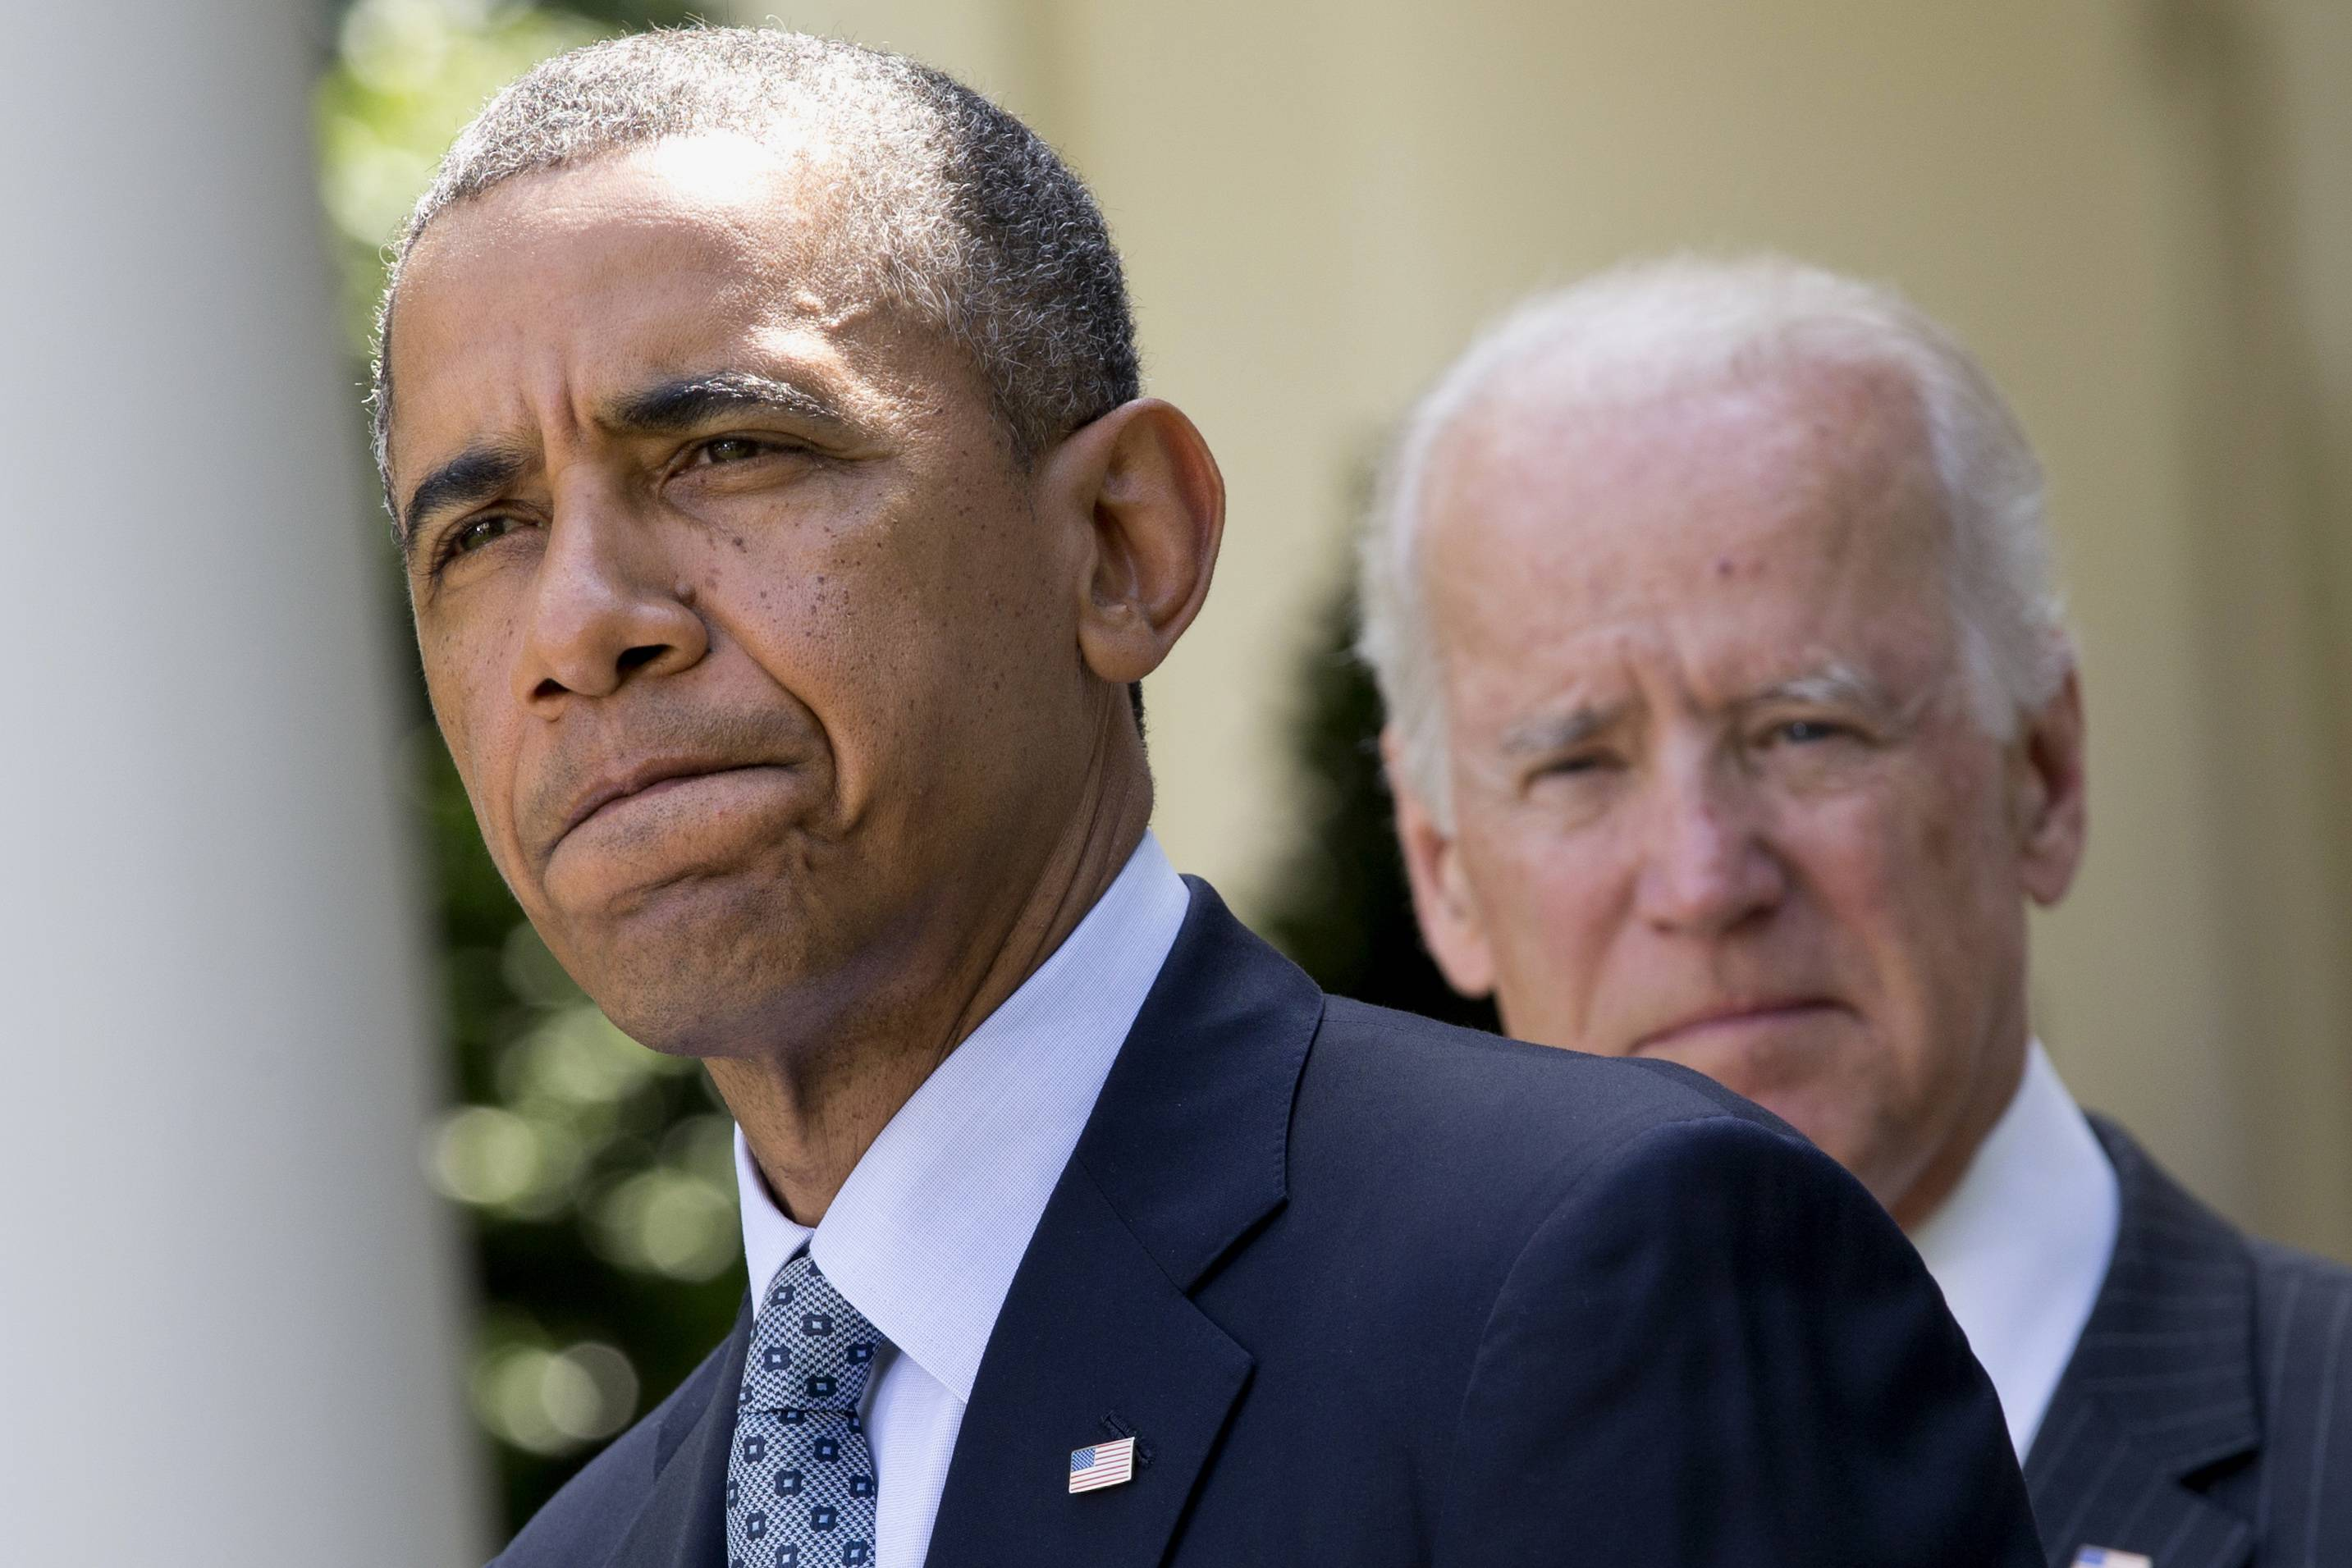 President Barack Obama, accompanied by Vice President Joe Biden, pauses while making an announcement about immigration reform in the Rose Garden of the White House in Washington.